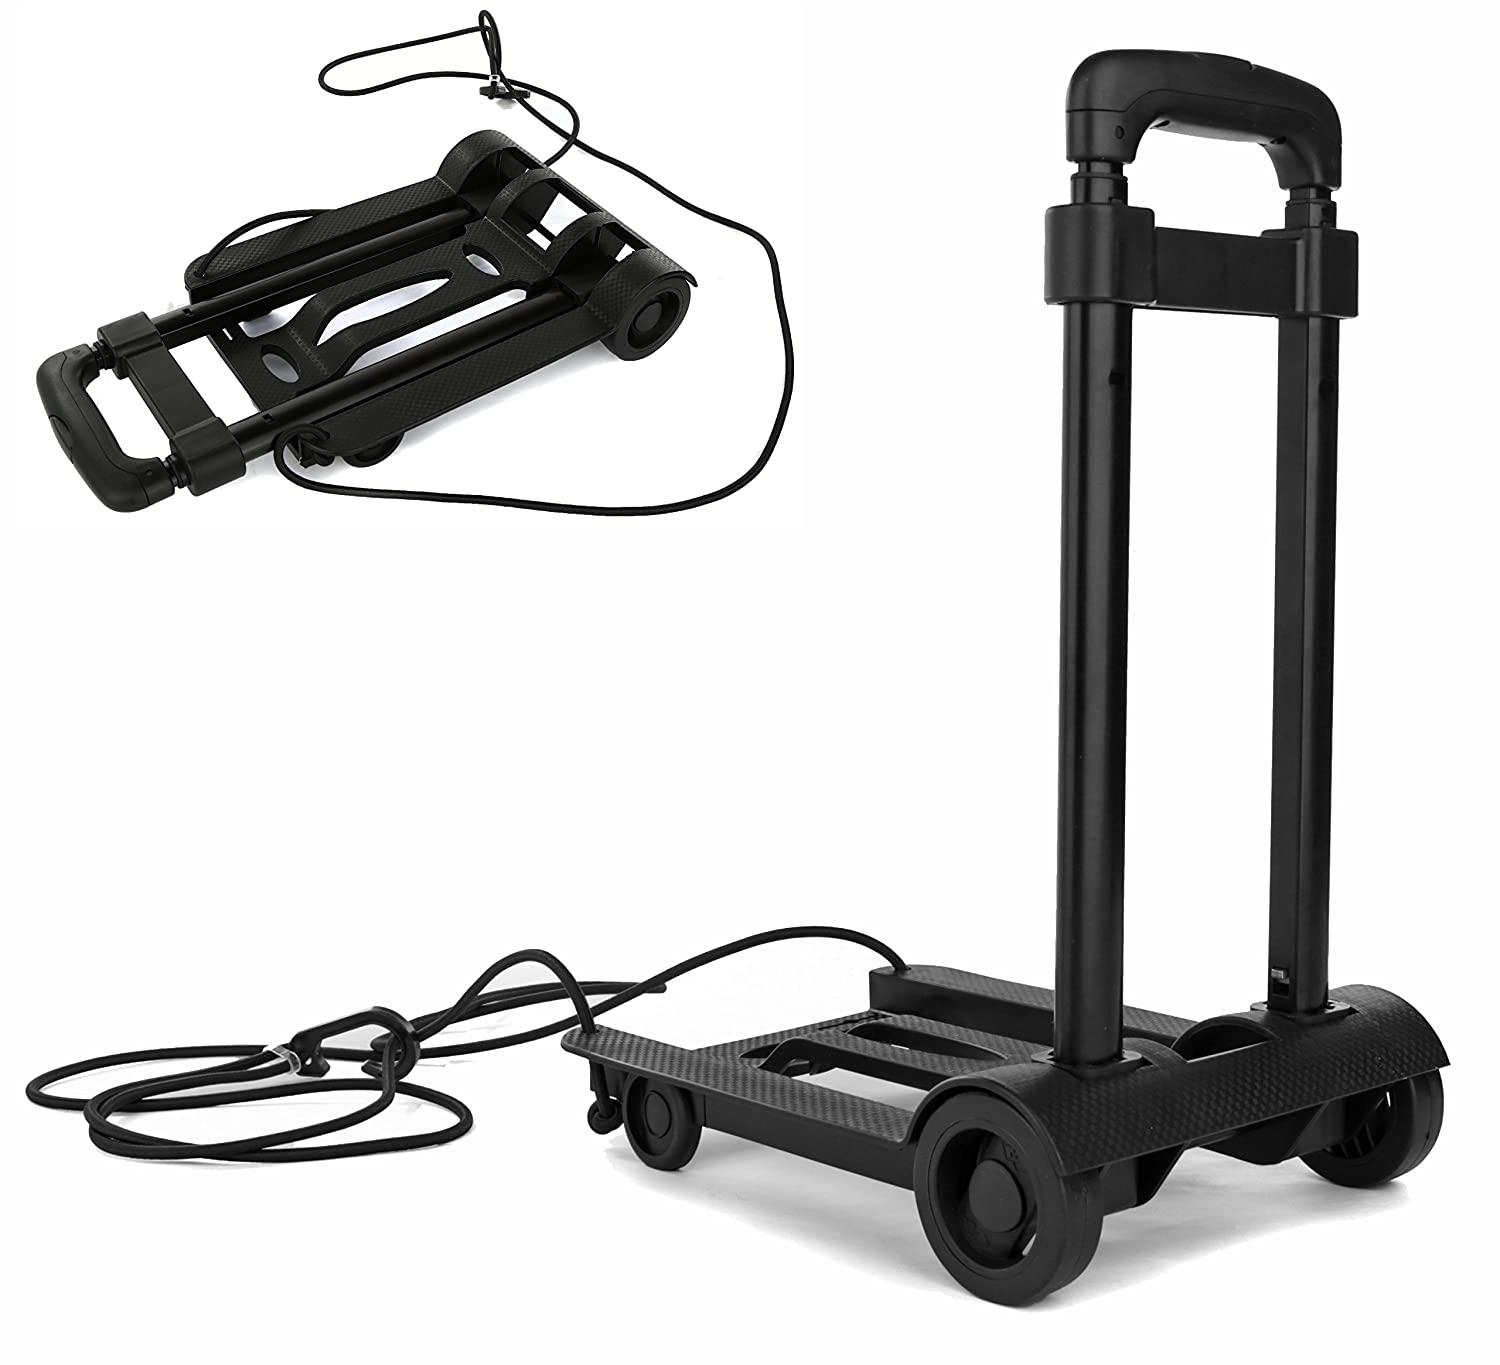 Folding Compact Lightweight Durable Luggage Cart Travel Trolley | Quiet Wheeling Sports & Medical Equipment Carrier 10457479